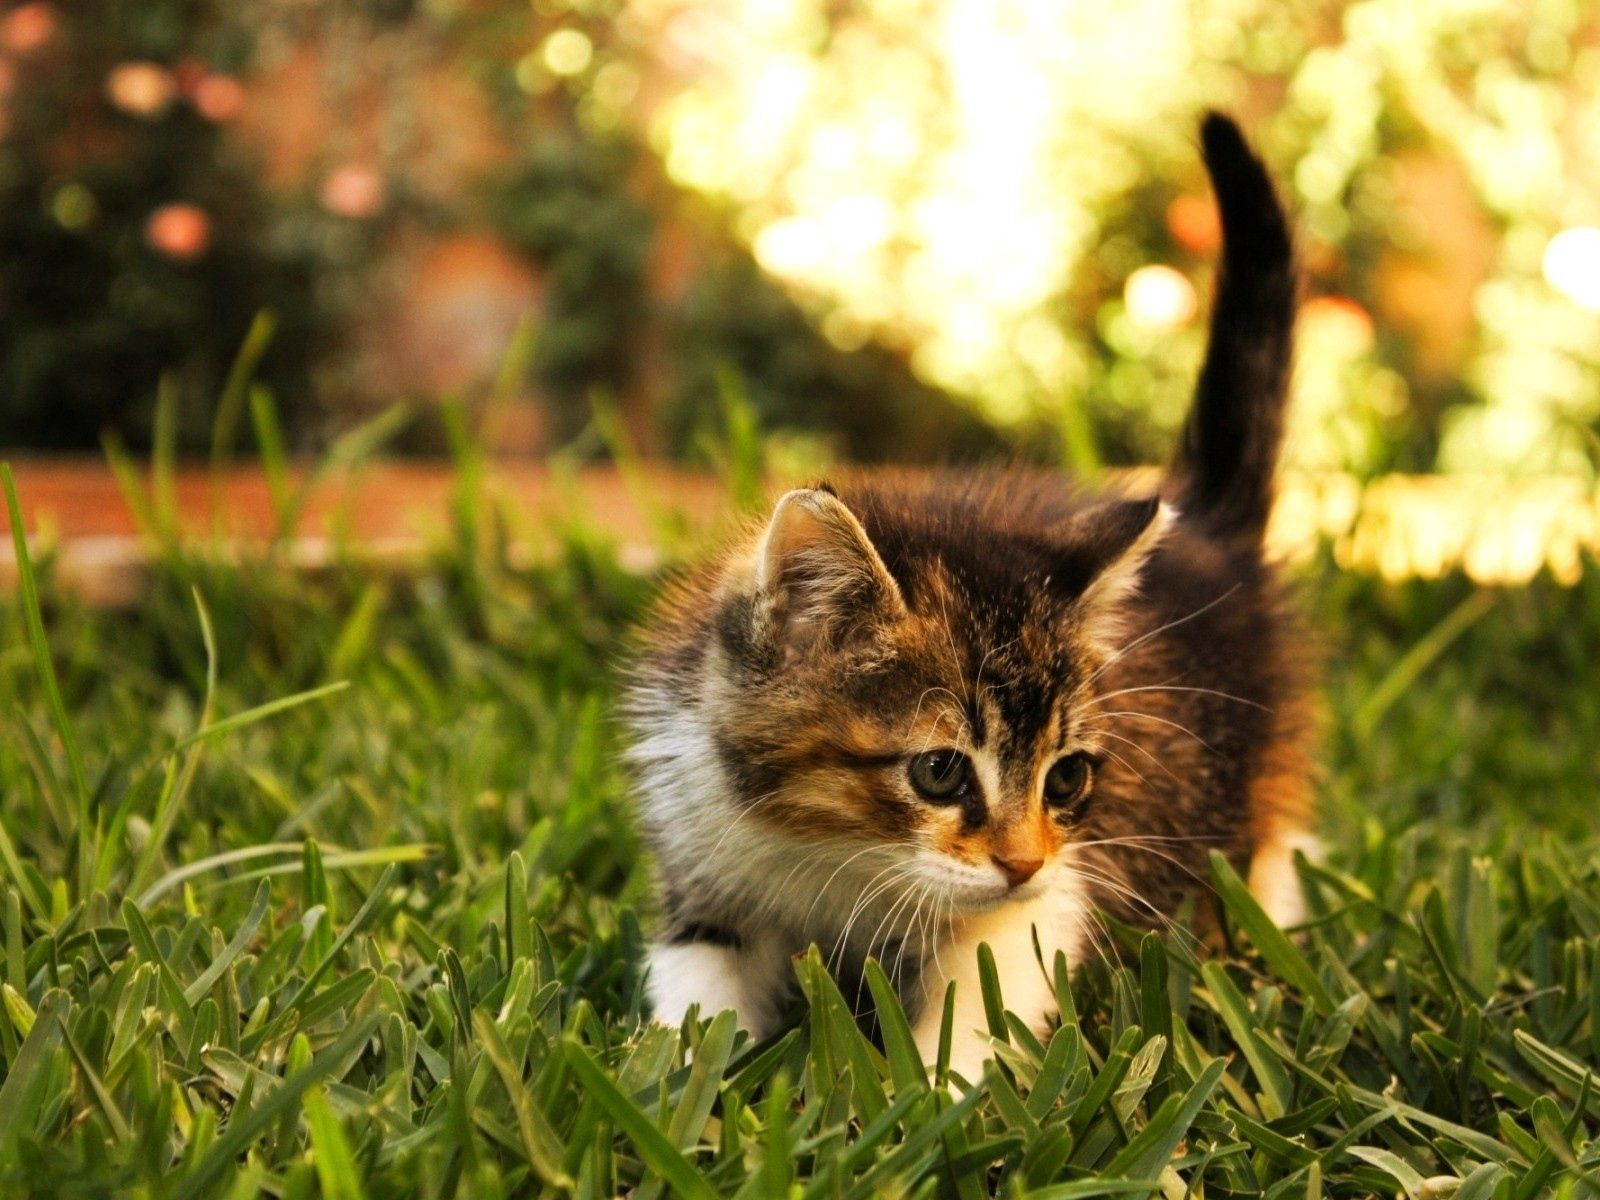 66445 Screensavers and Wallpapers Kitten for phone. Download Animals, Grass, Fluffy, Kitty, Kitten, Stroll pictures for free